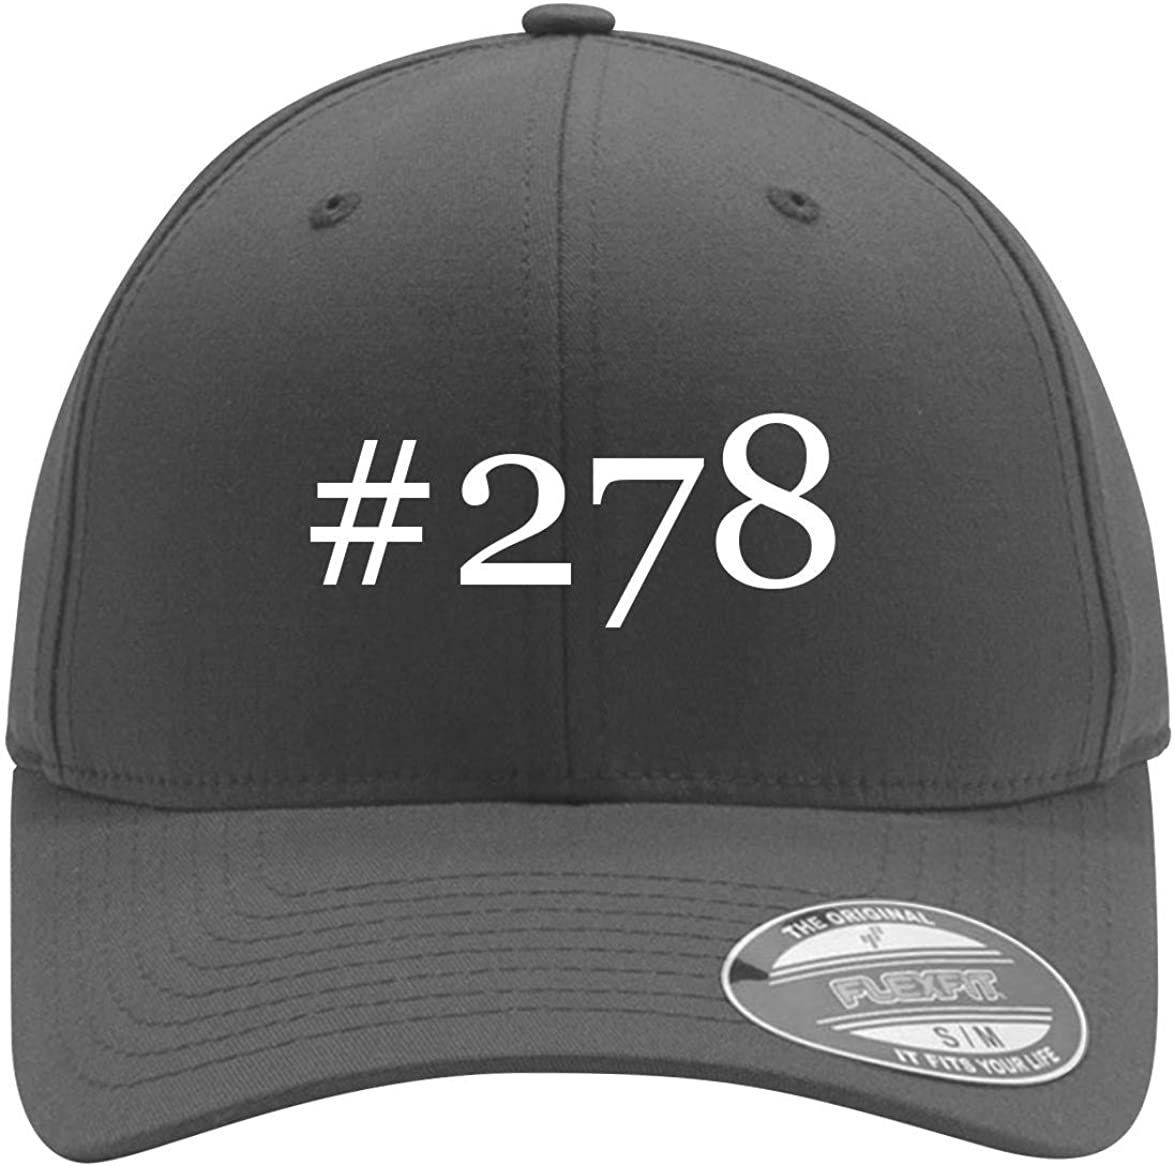 #278 - Adult Men's Hashtag Flexfit Baseball Hat Cap 61ZjKIc2pUL